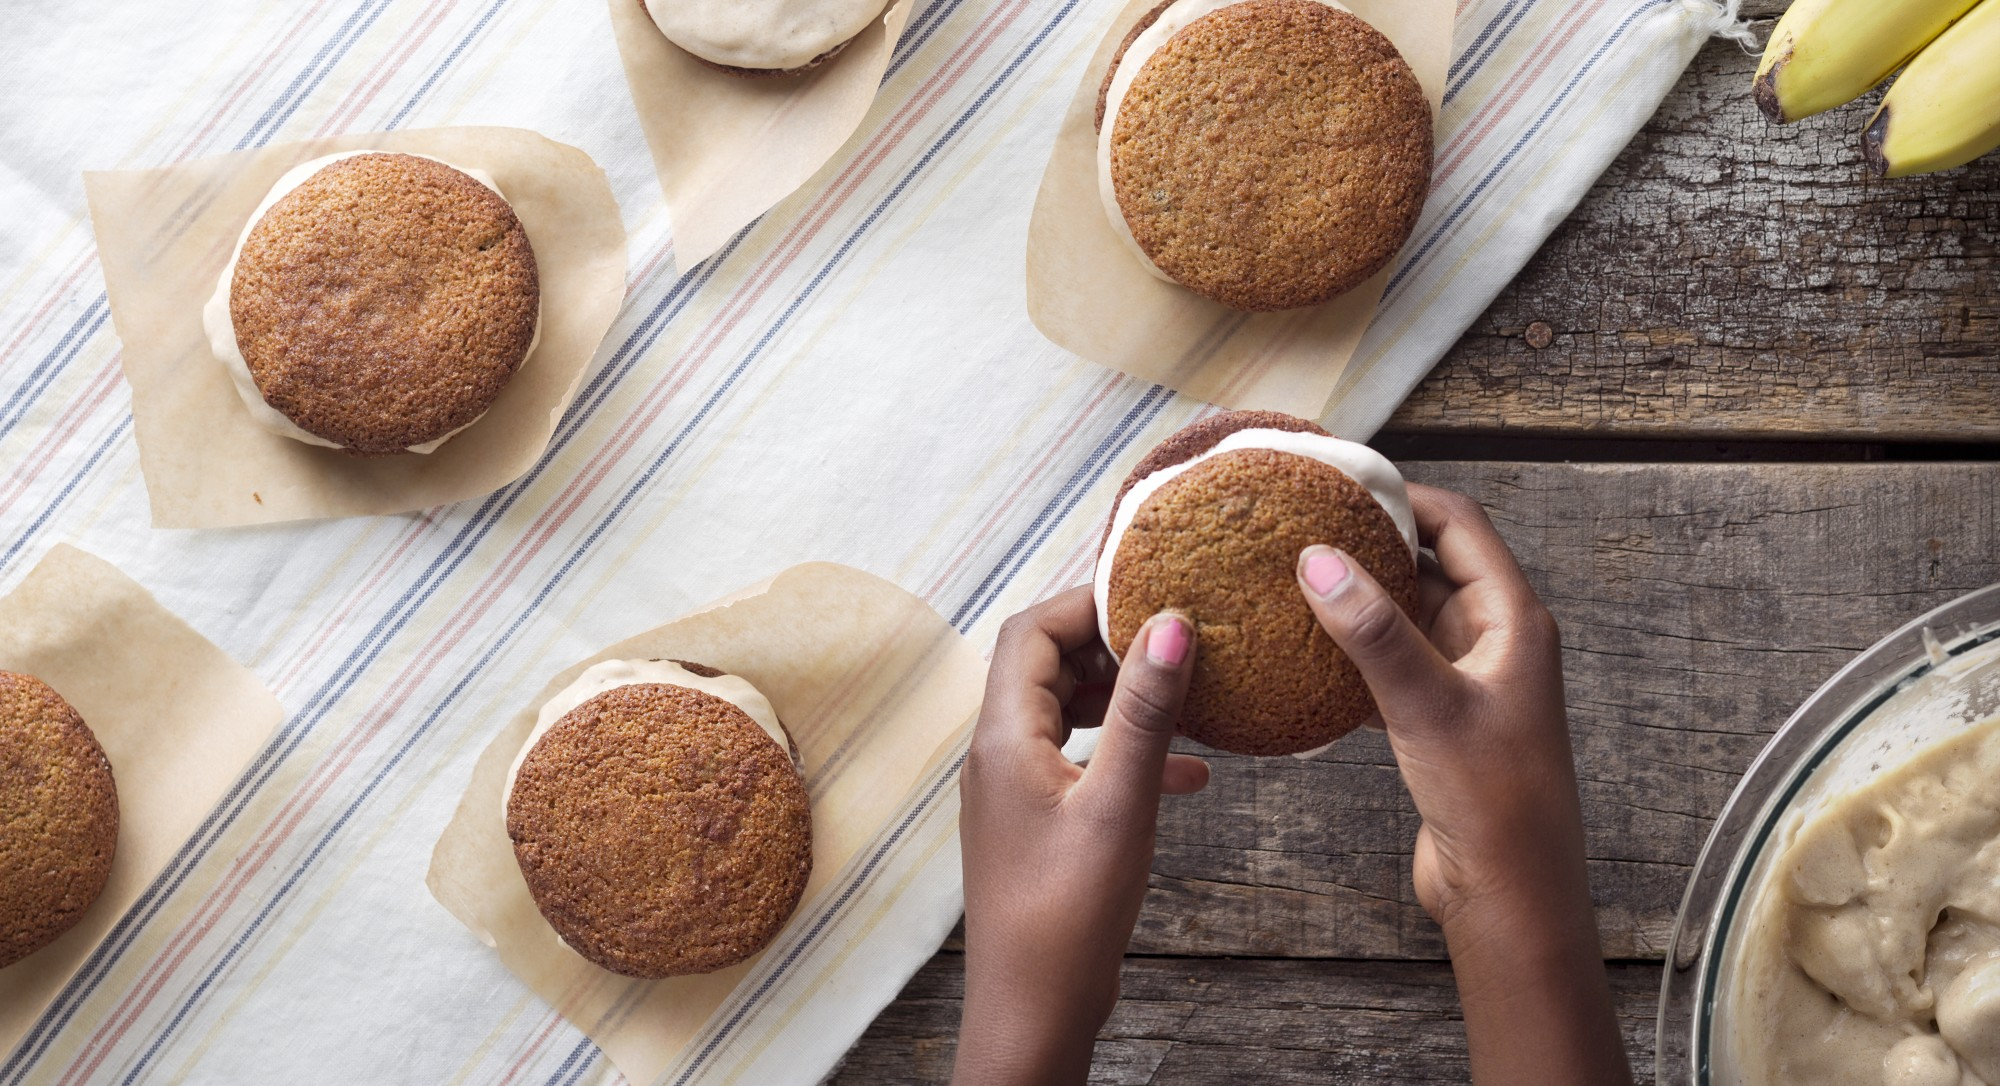 Snickerdoodle Ice Cream Sandwiches Will Make Your Summer Even Sweeter